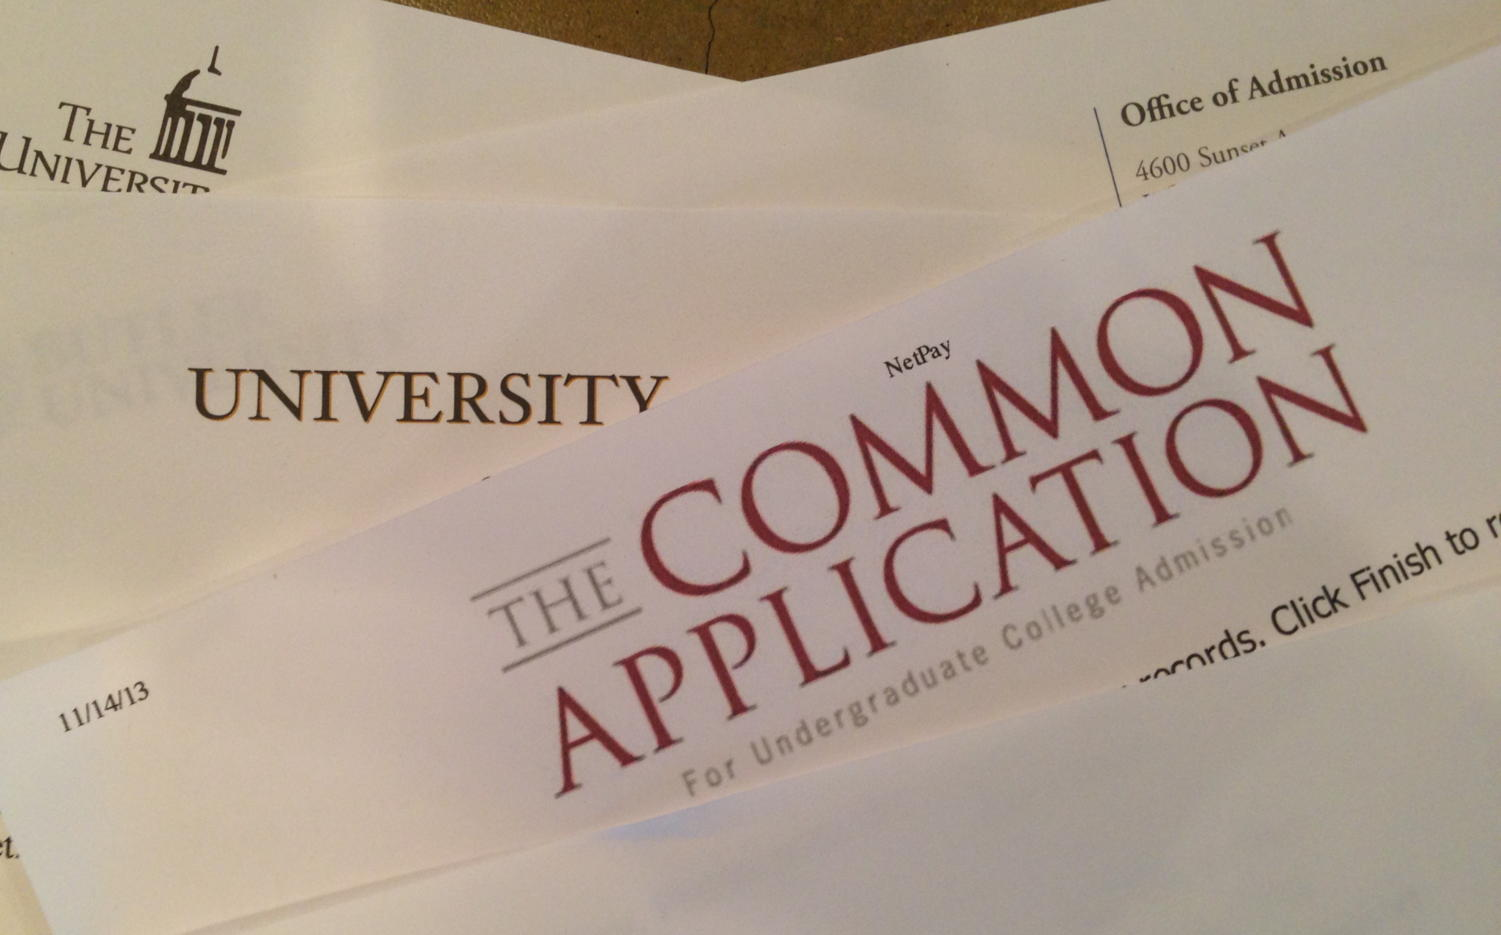 College Application deadlines are approaching. Learn how to deal with them and be successful.